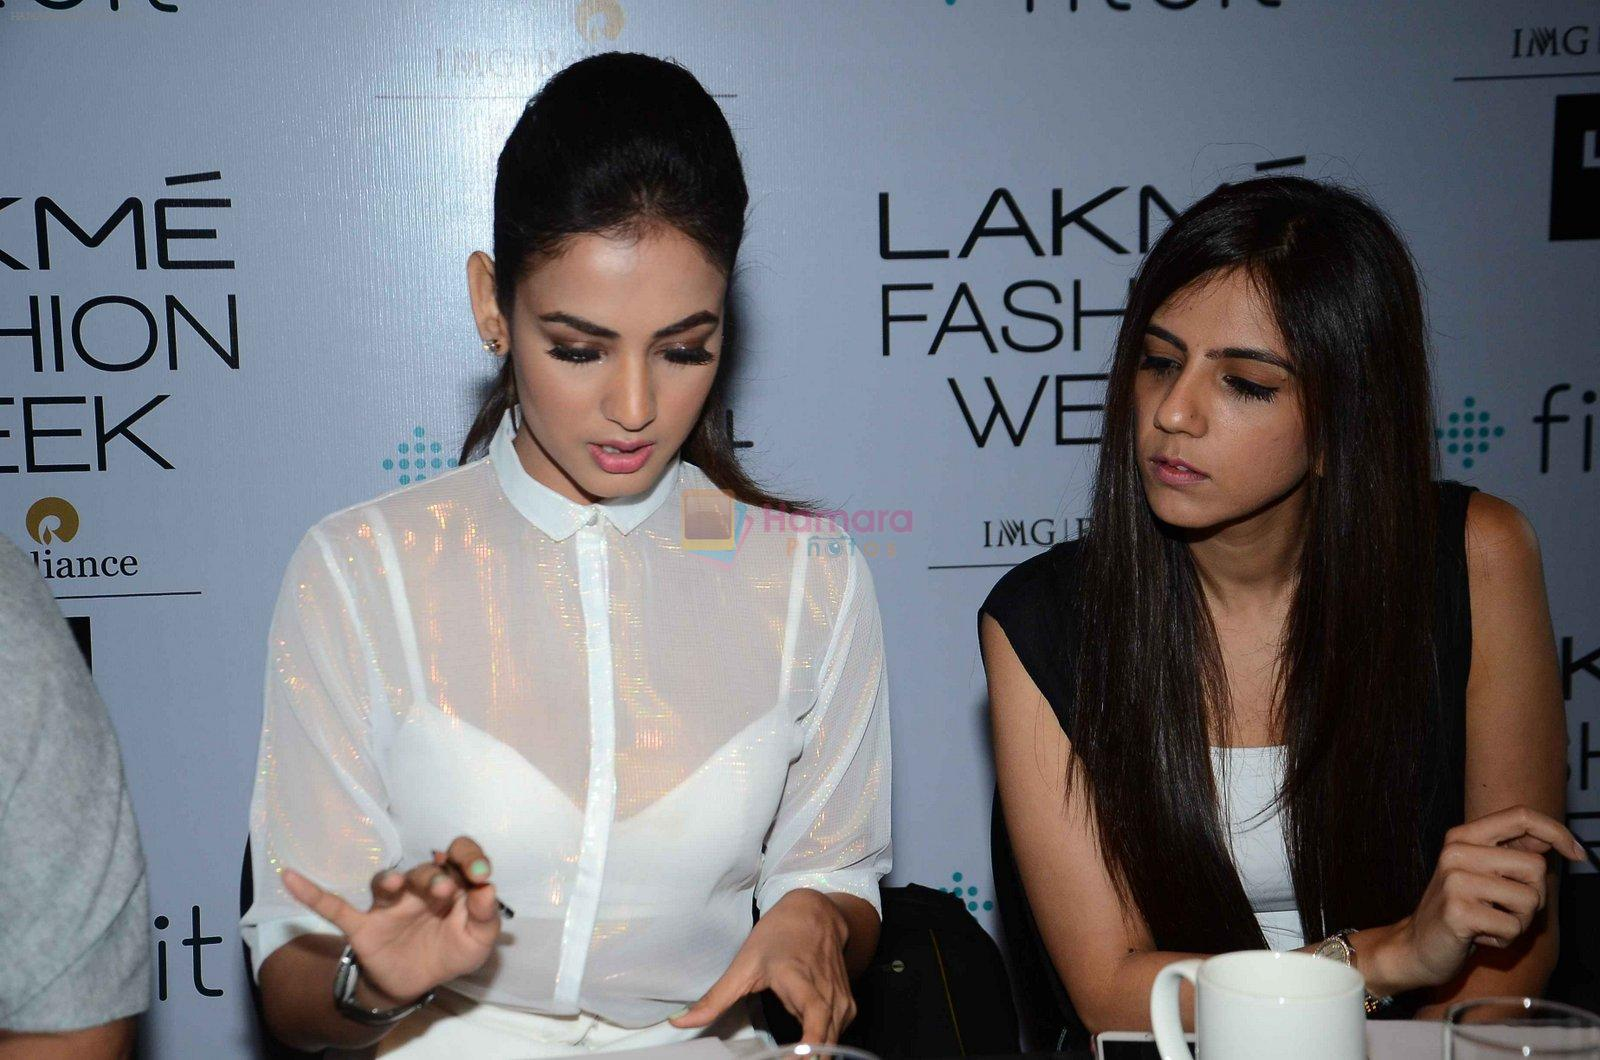 Sonal Chauhan at Lakme model auditions in Mumbai on 23rd Feb 2016